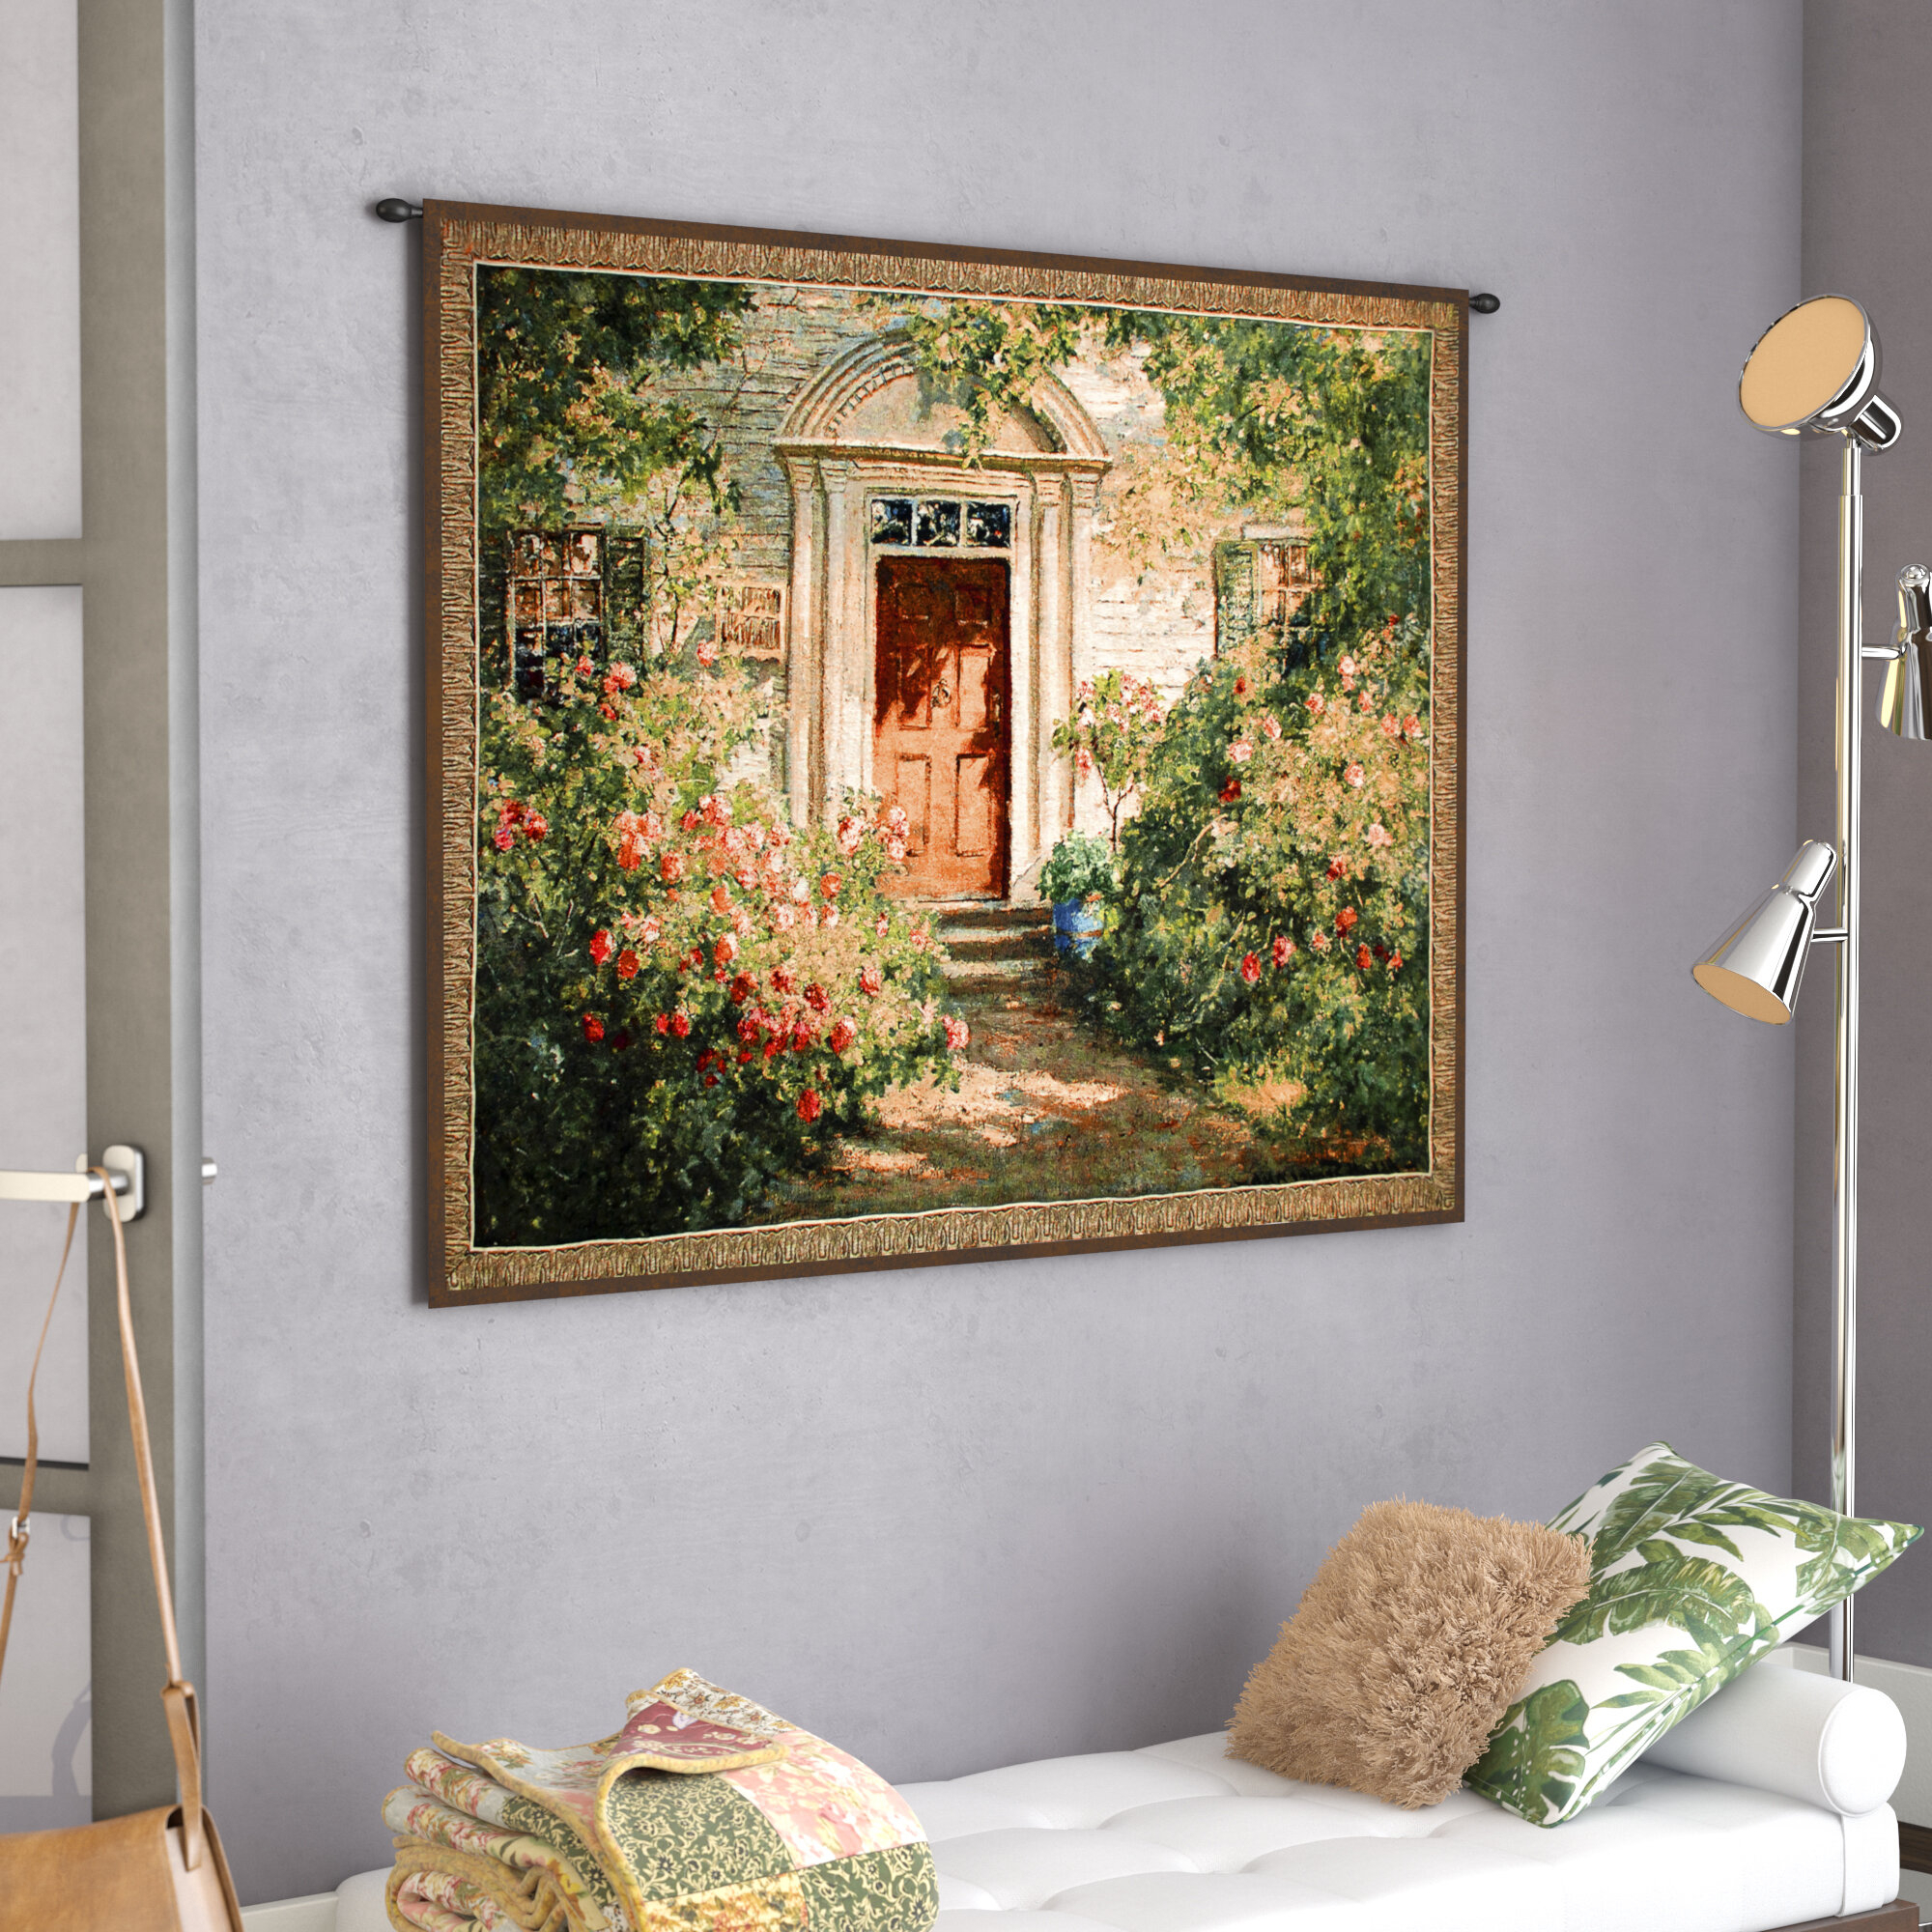 Grandma's Doorway Tapestry With Most Popular Blended Fabric Gallanteries European Wall Hangings (View 3 of 20)